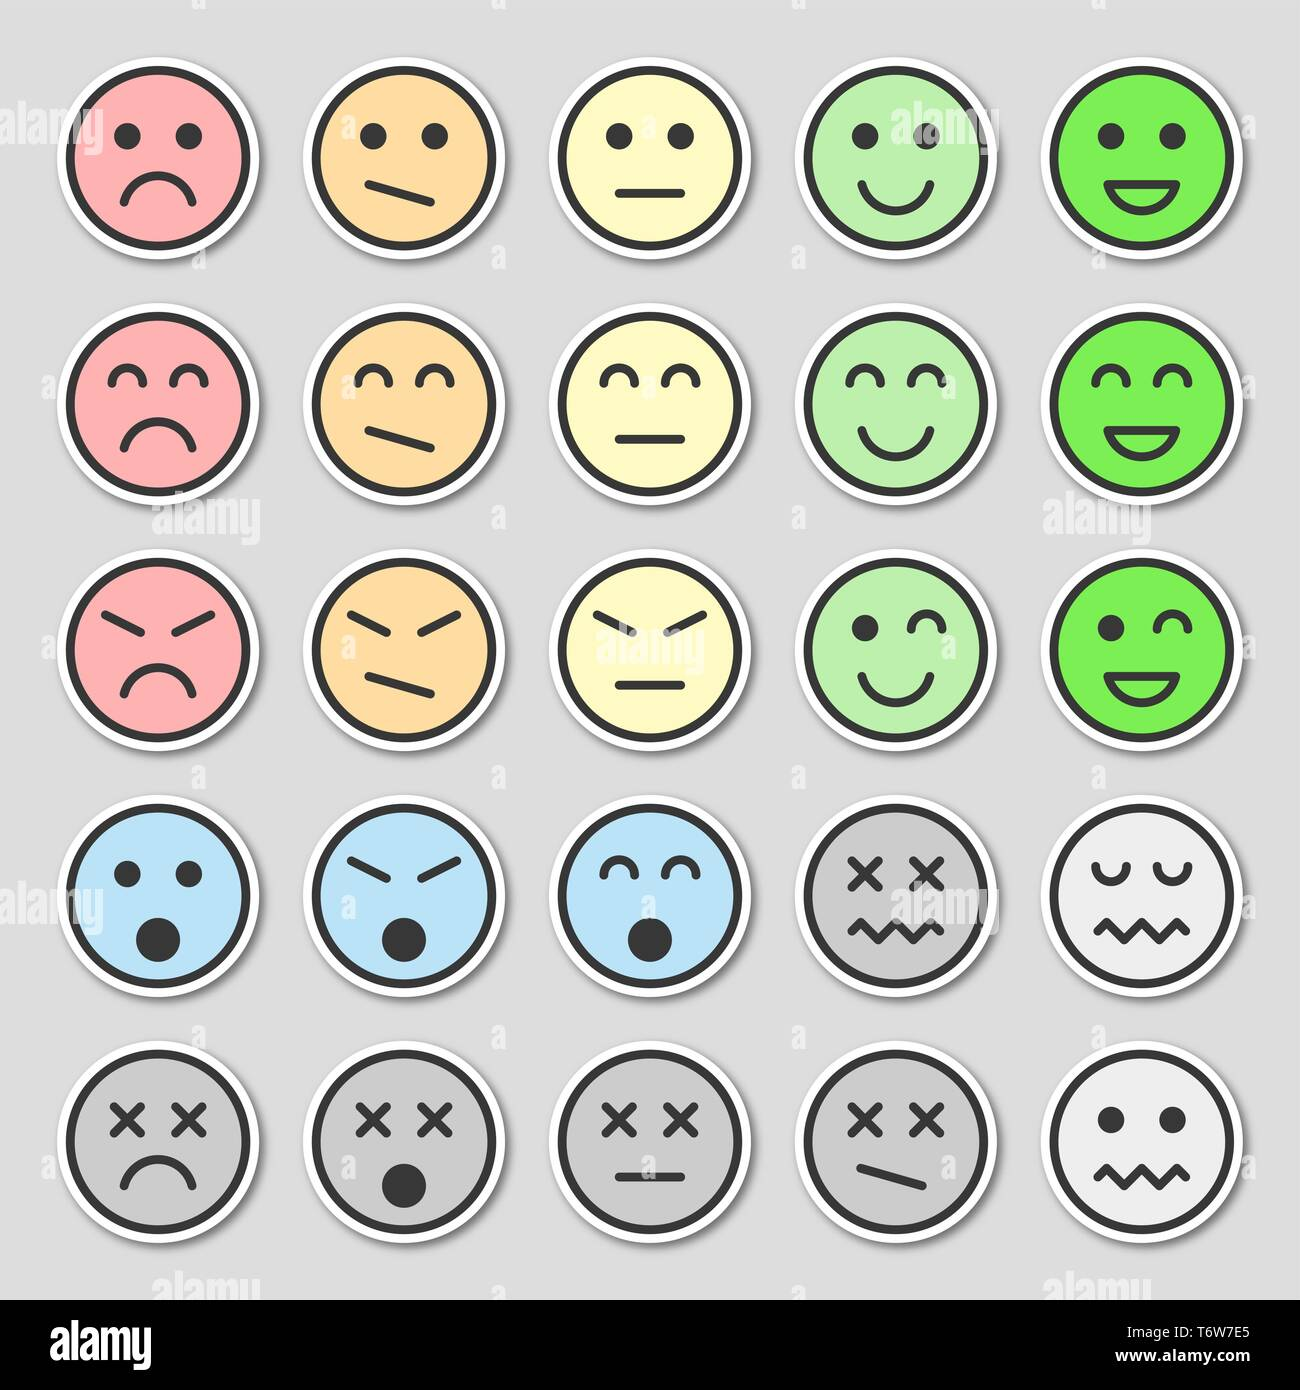 Set of pastel emoticons. Flat and beautiful stickers. Vector illustration,  isolated on gray background. - Stock Vector